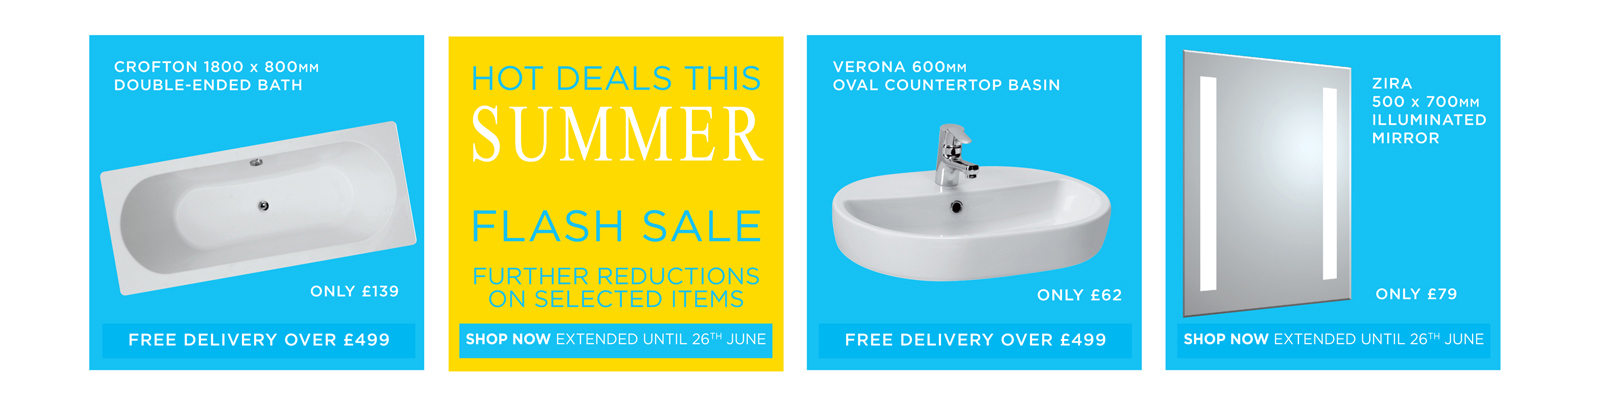 SUMMER FLASH SALE - FURTHER REDUCTIONS